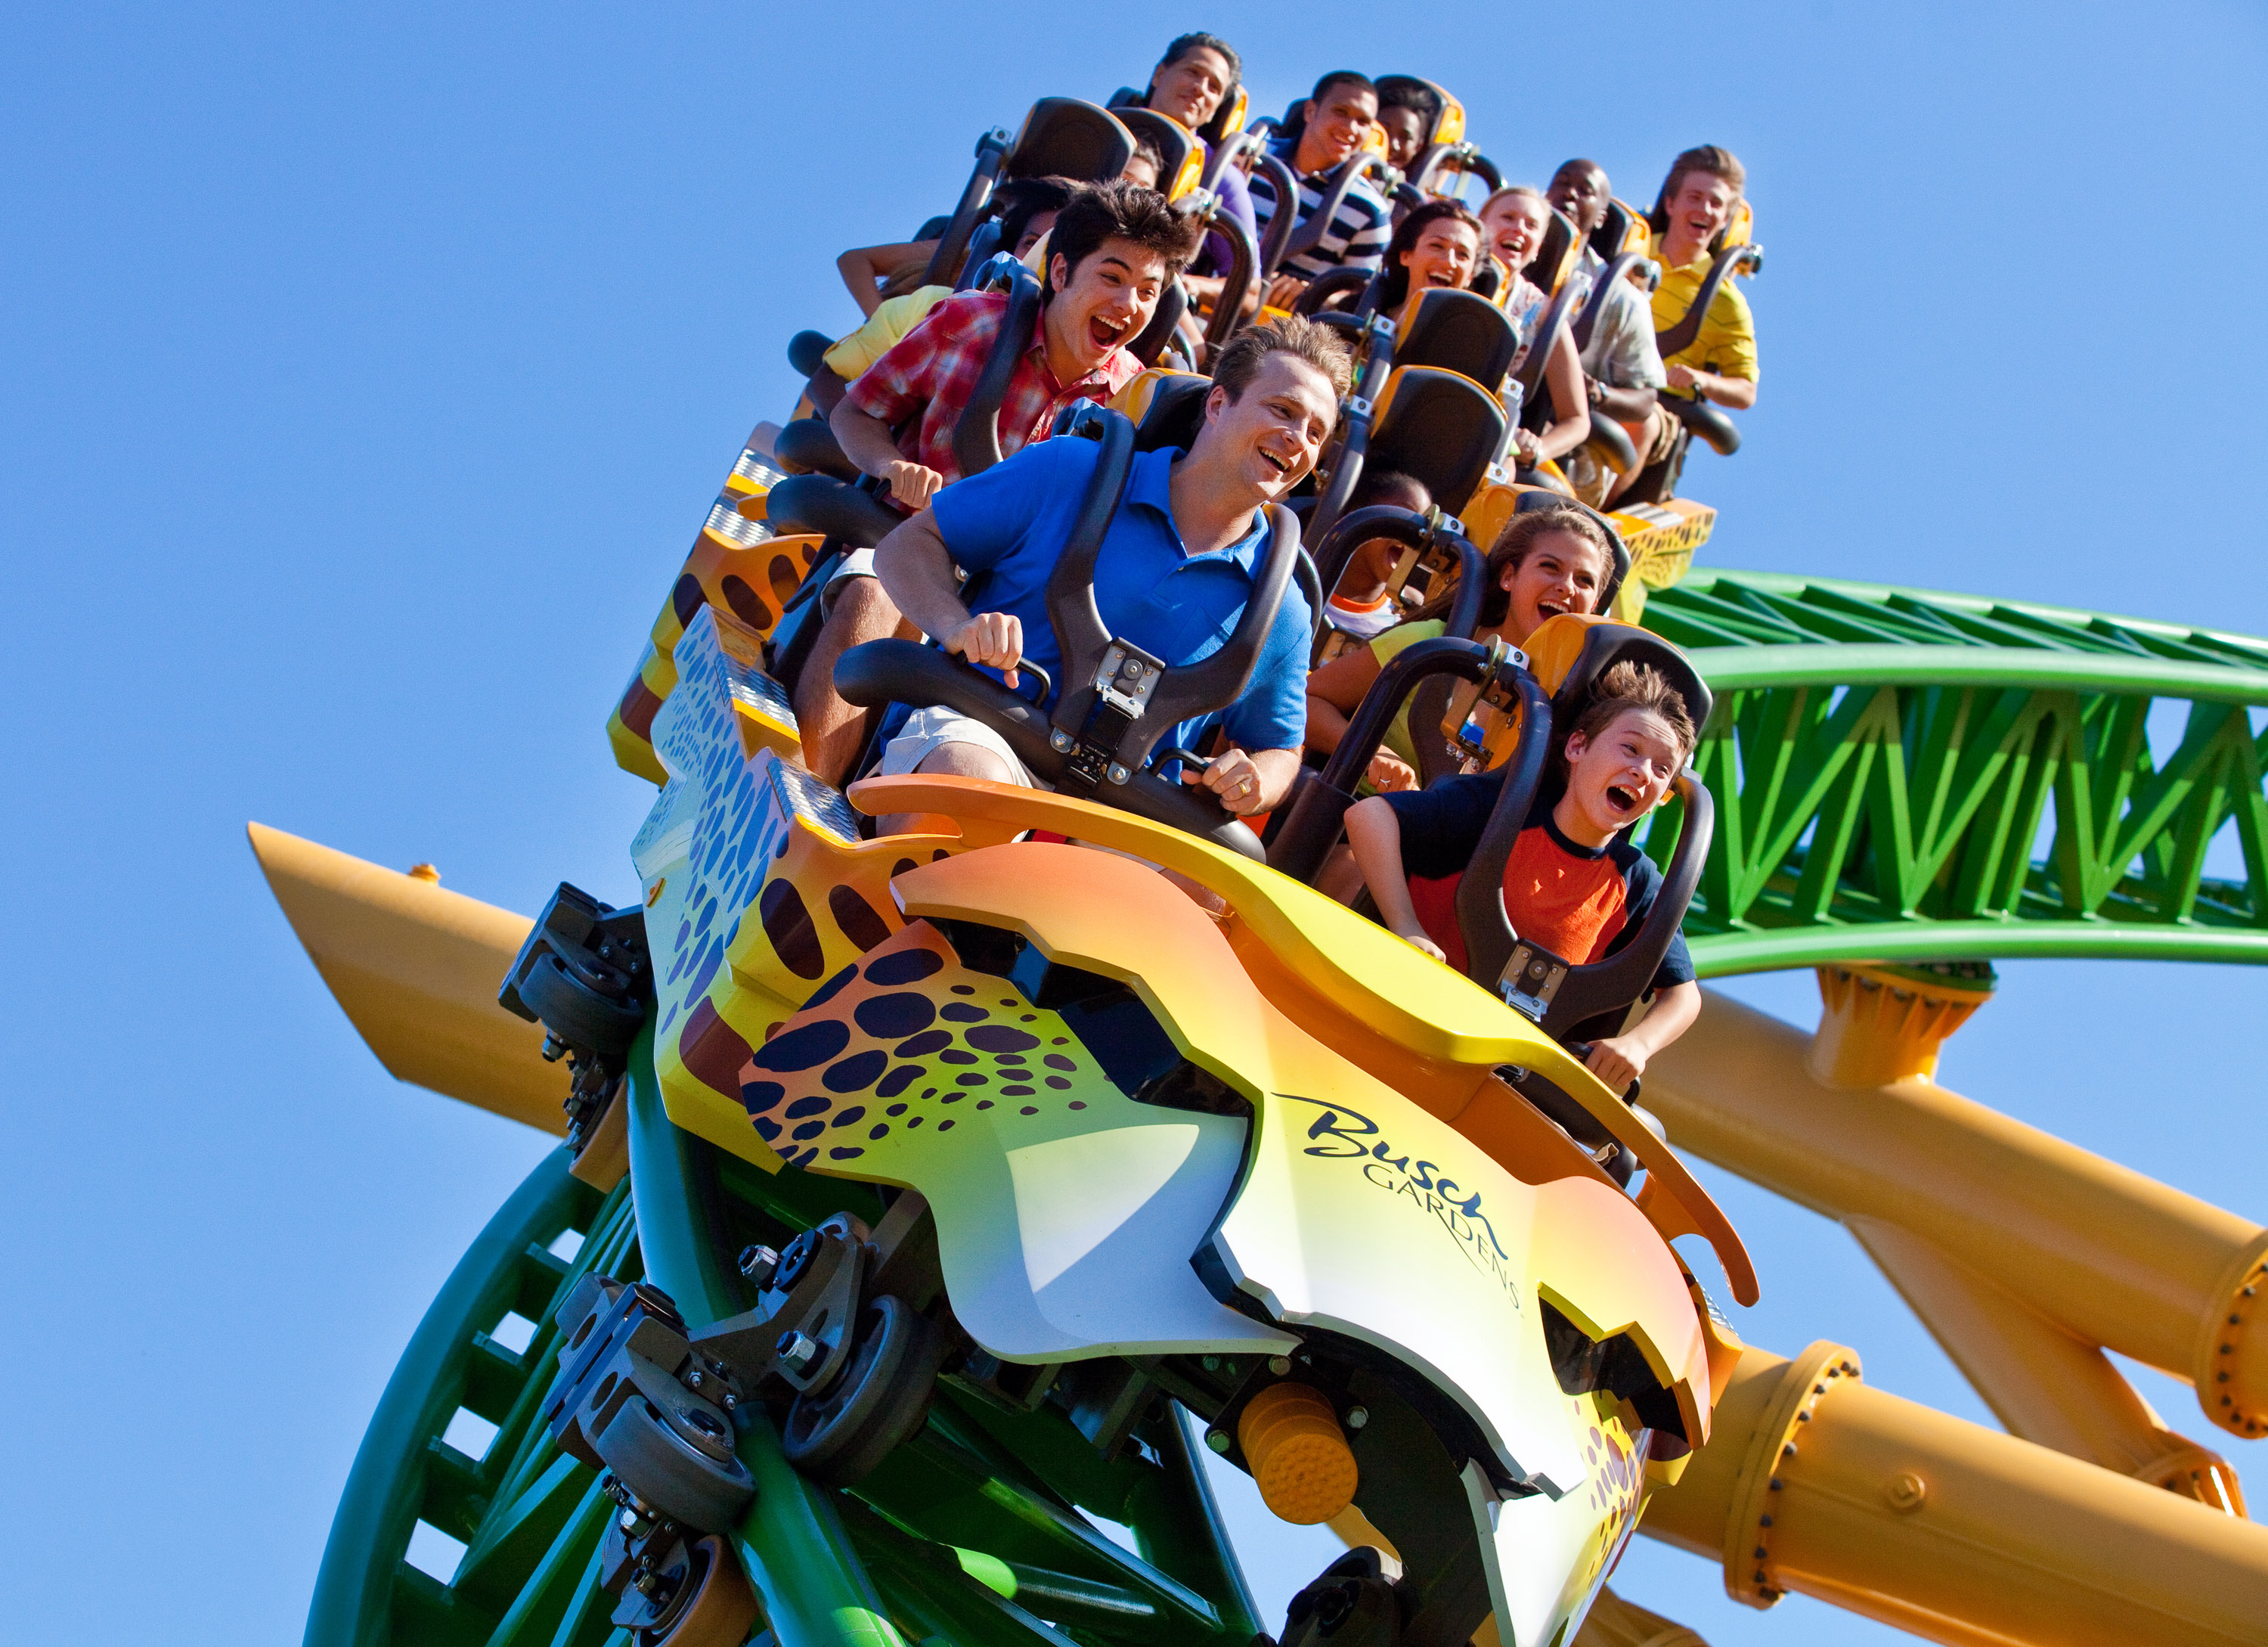 New Ticket Options At Seaworld And Busch Gardens Parks